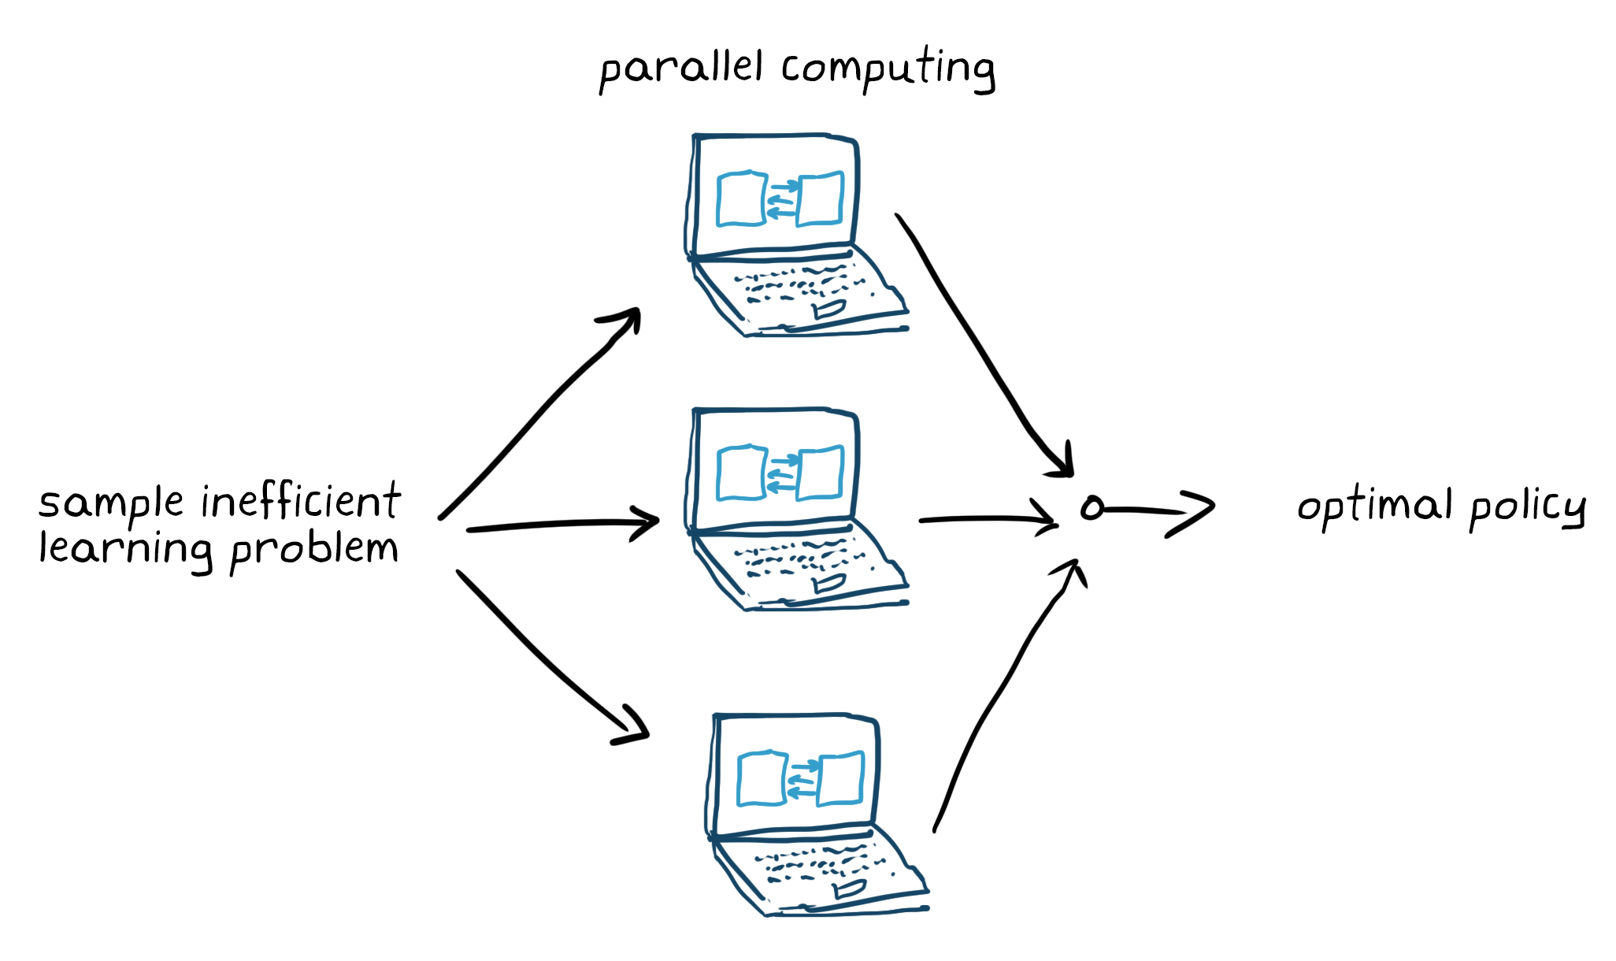 Figure 5. Training sample inefficient learning problem with parallel computing.